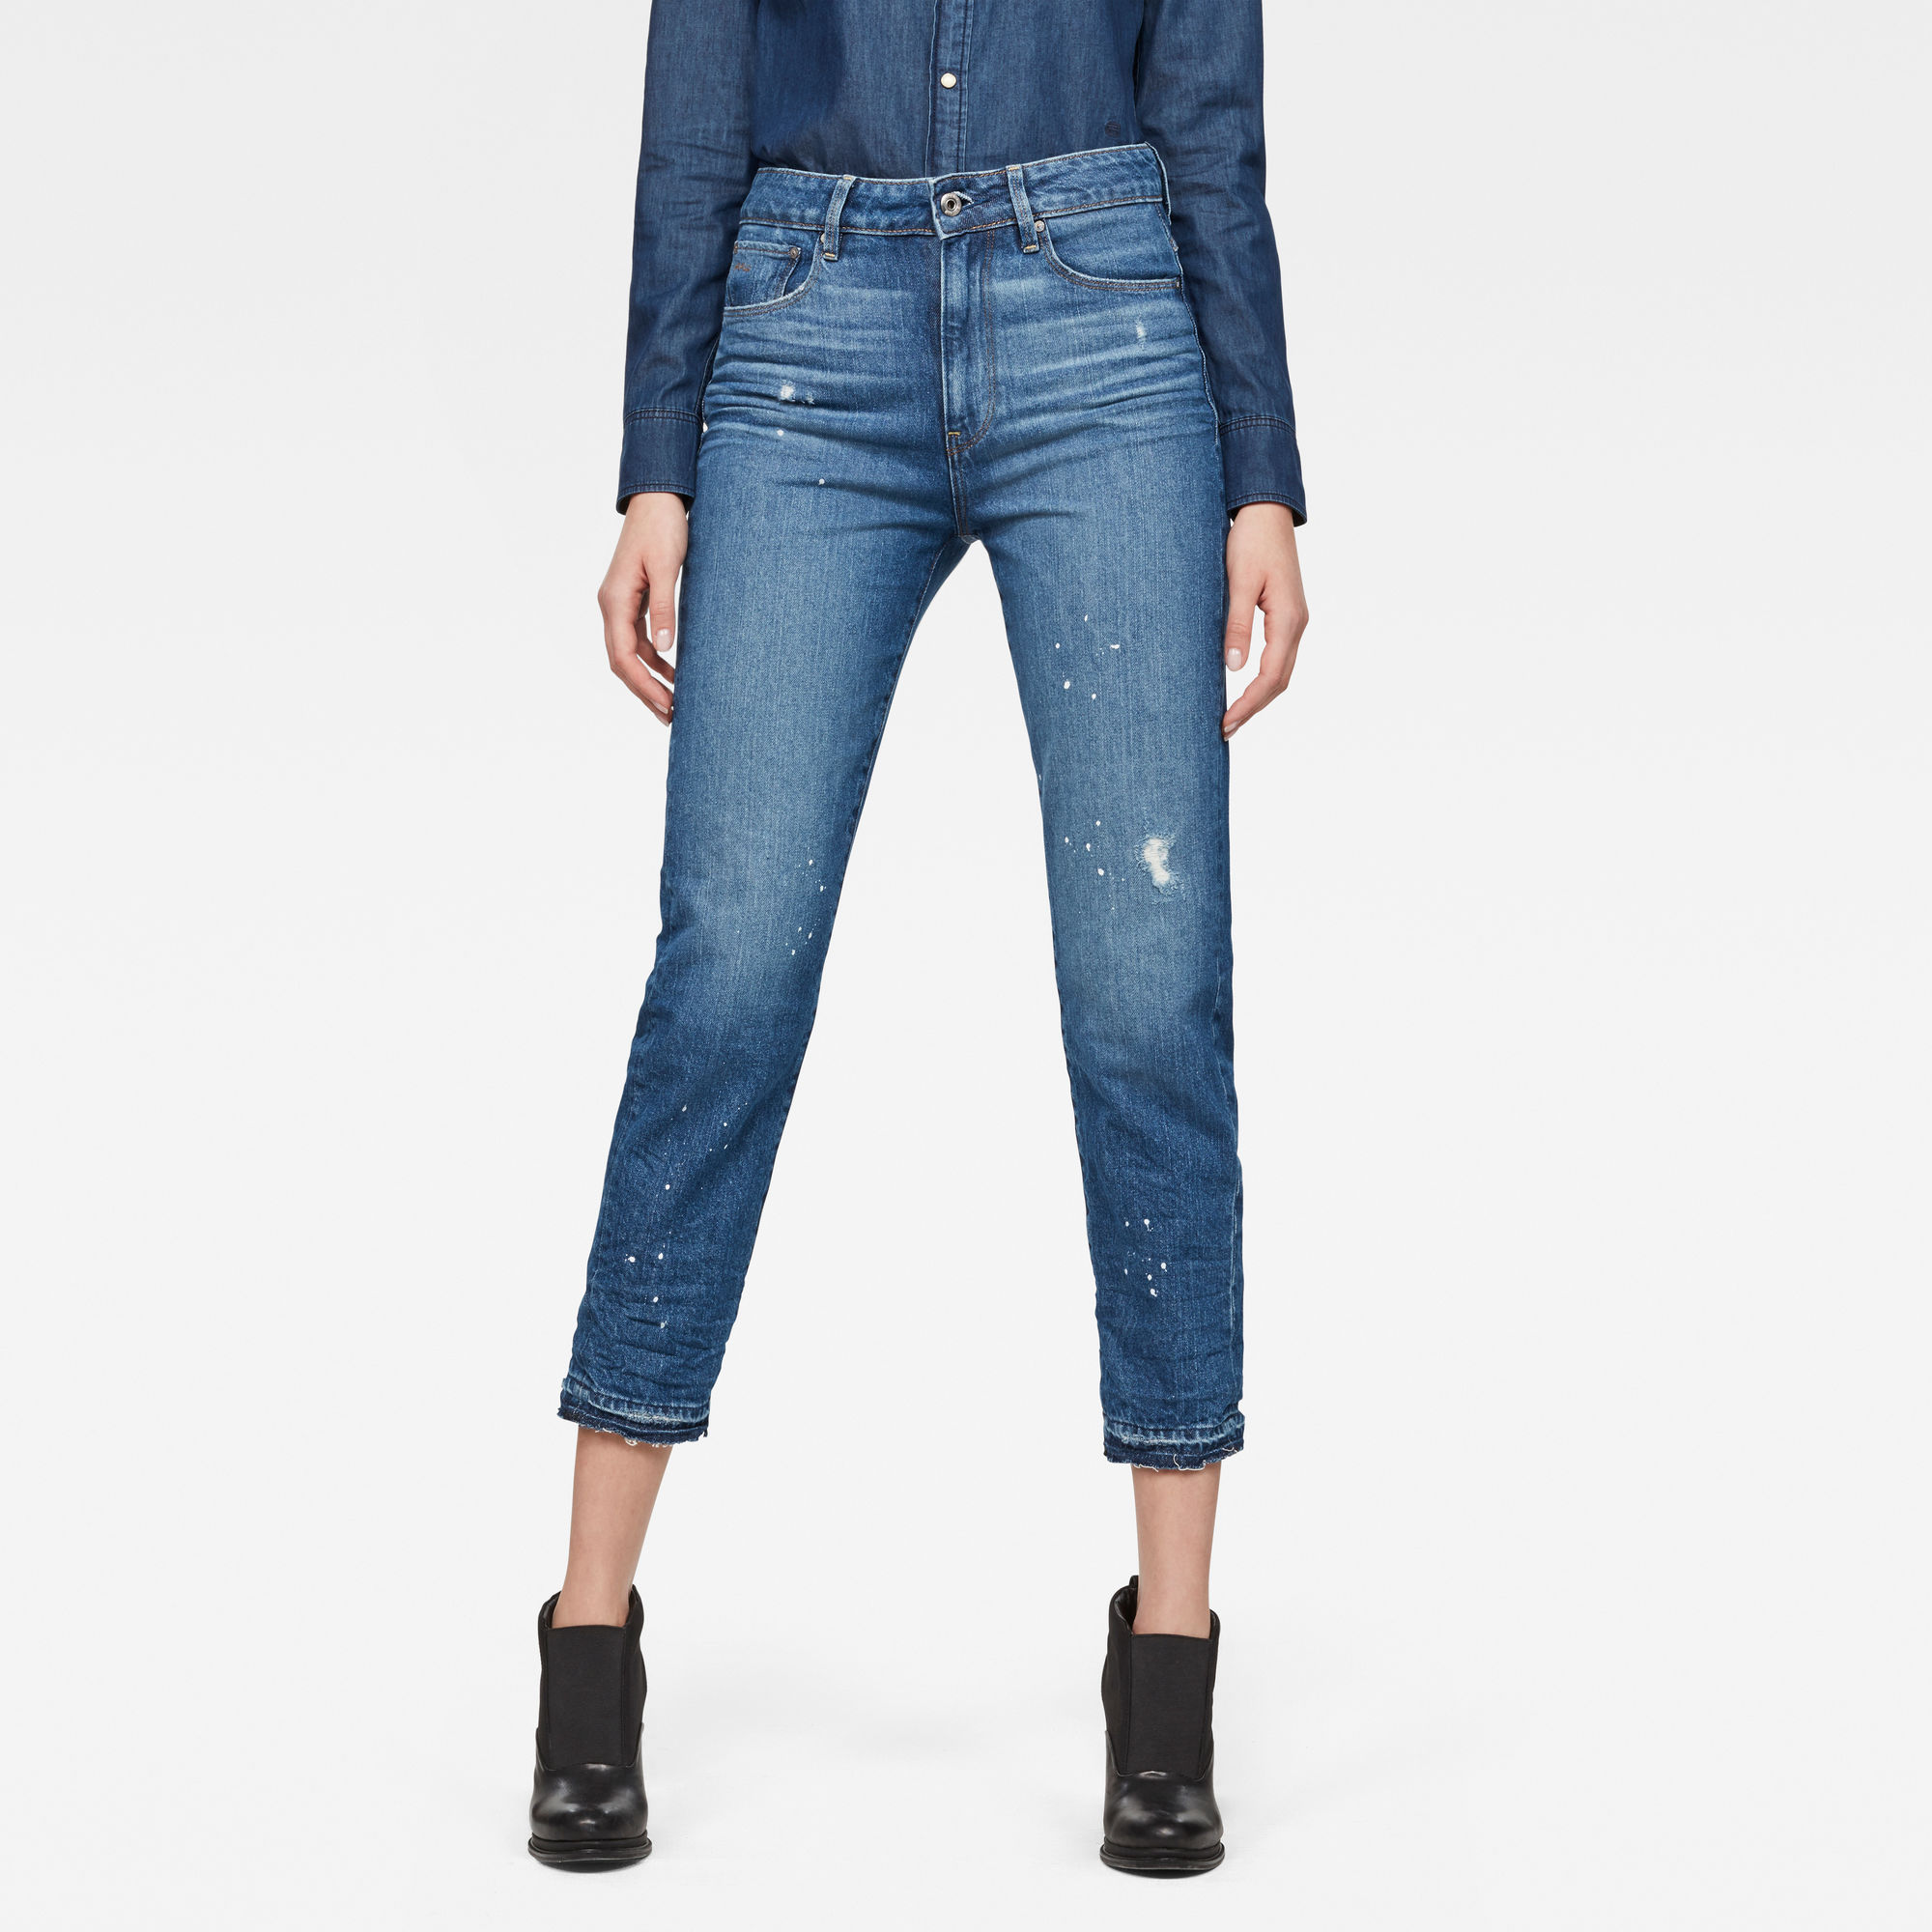 3301 Ultra High waist Straight Ripped 7 8-Length Jeans